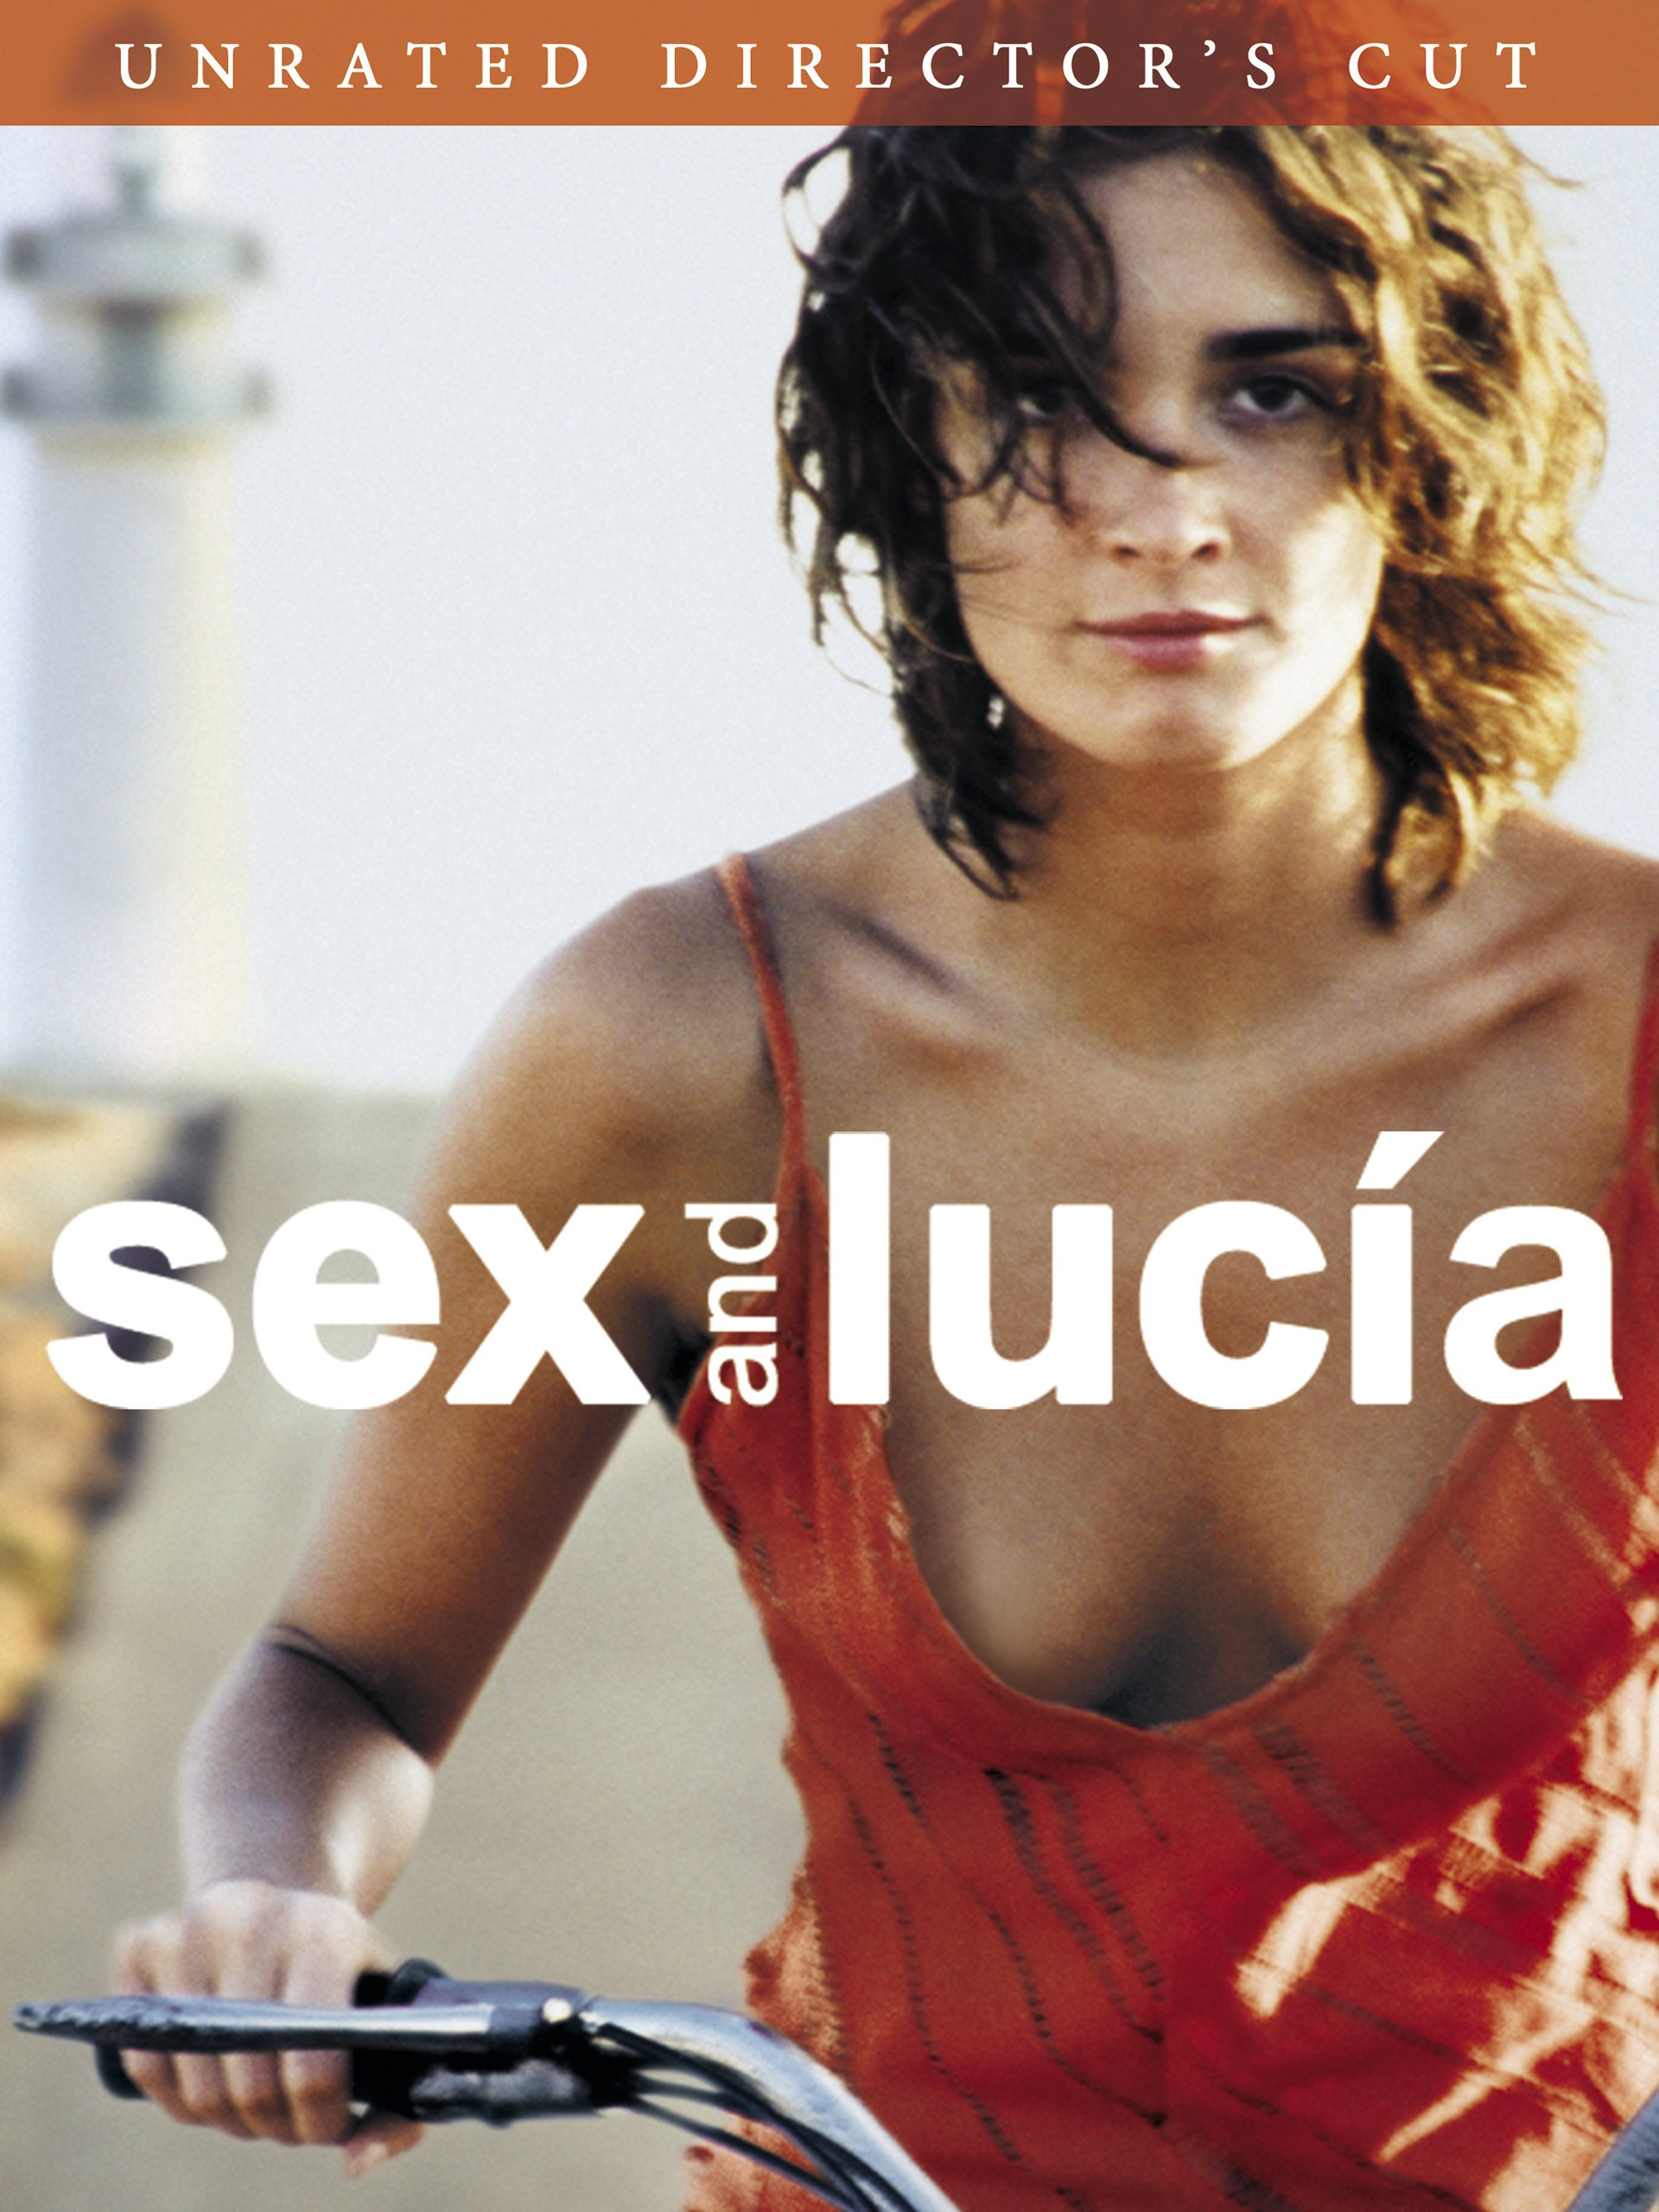 Sex And Lucía (2001) Poster #1